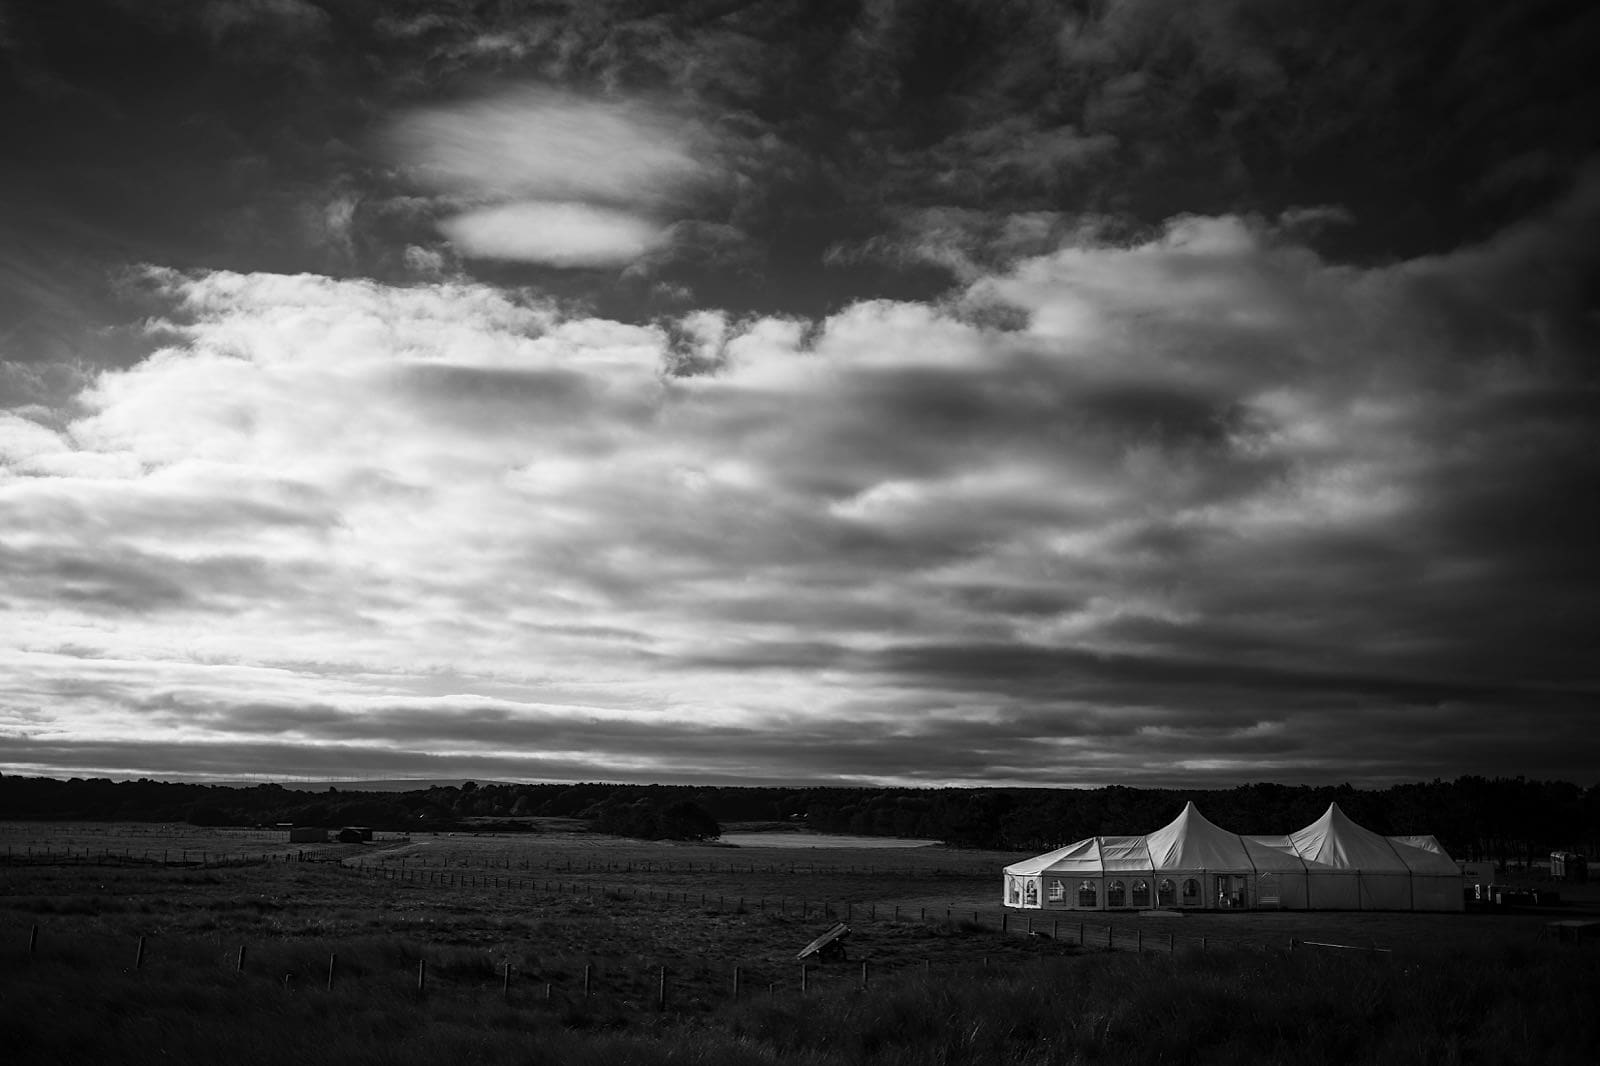 harvest moon dunbar wedding photography 003